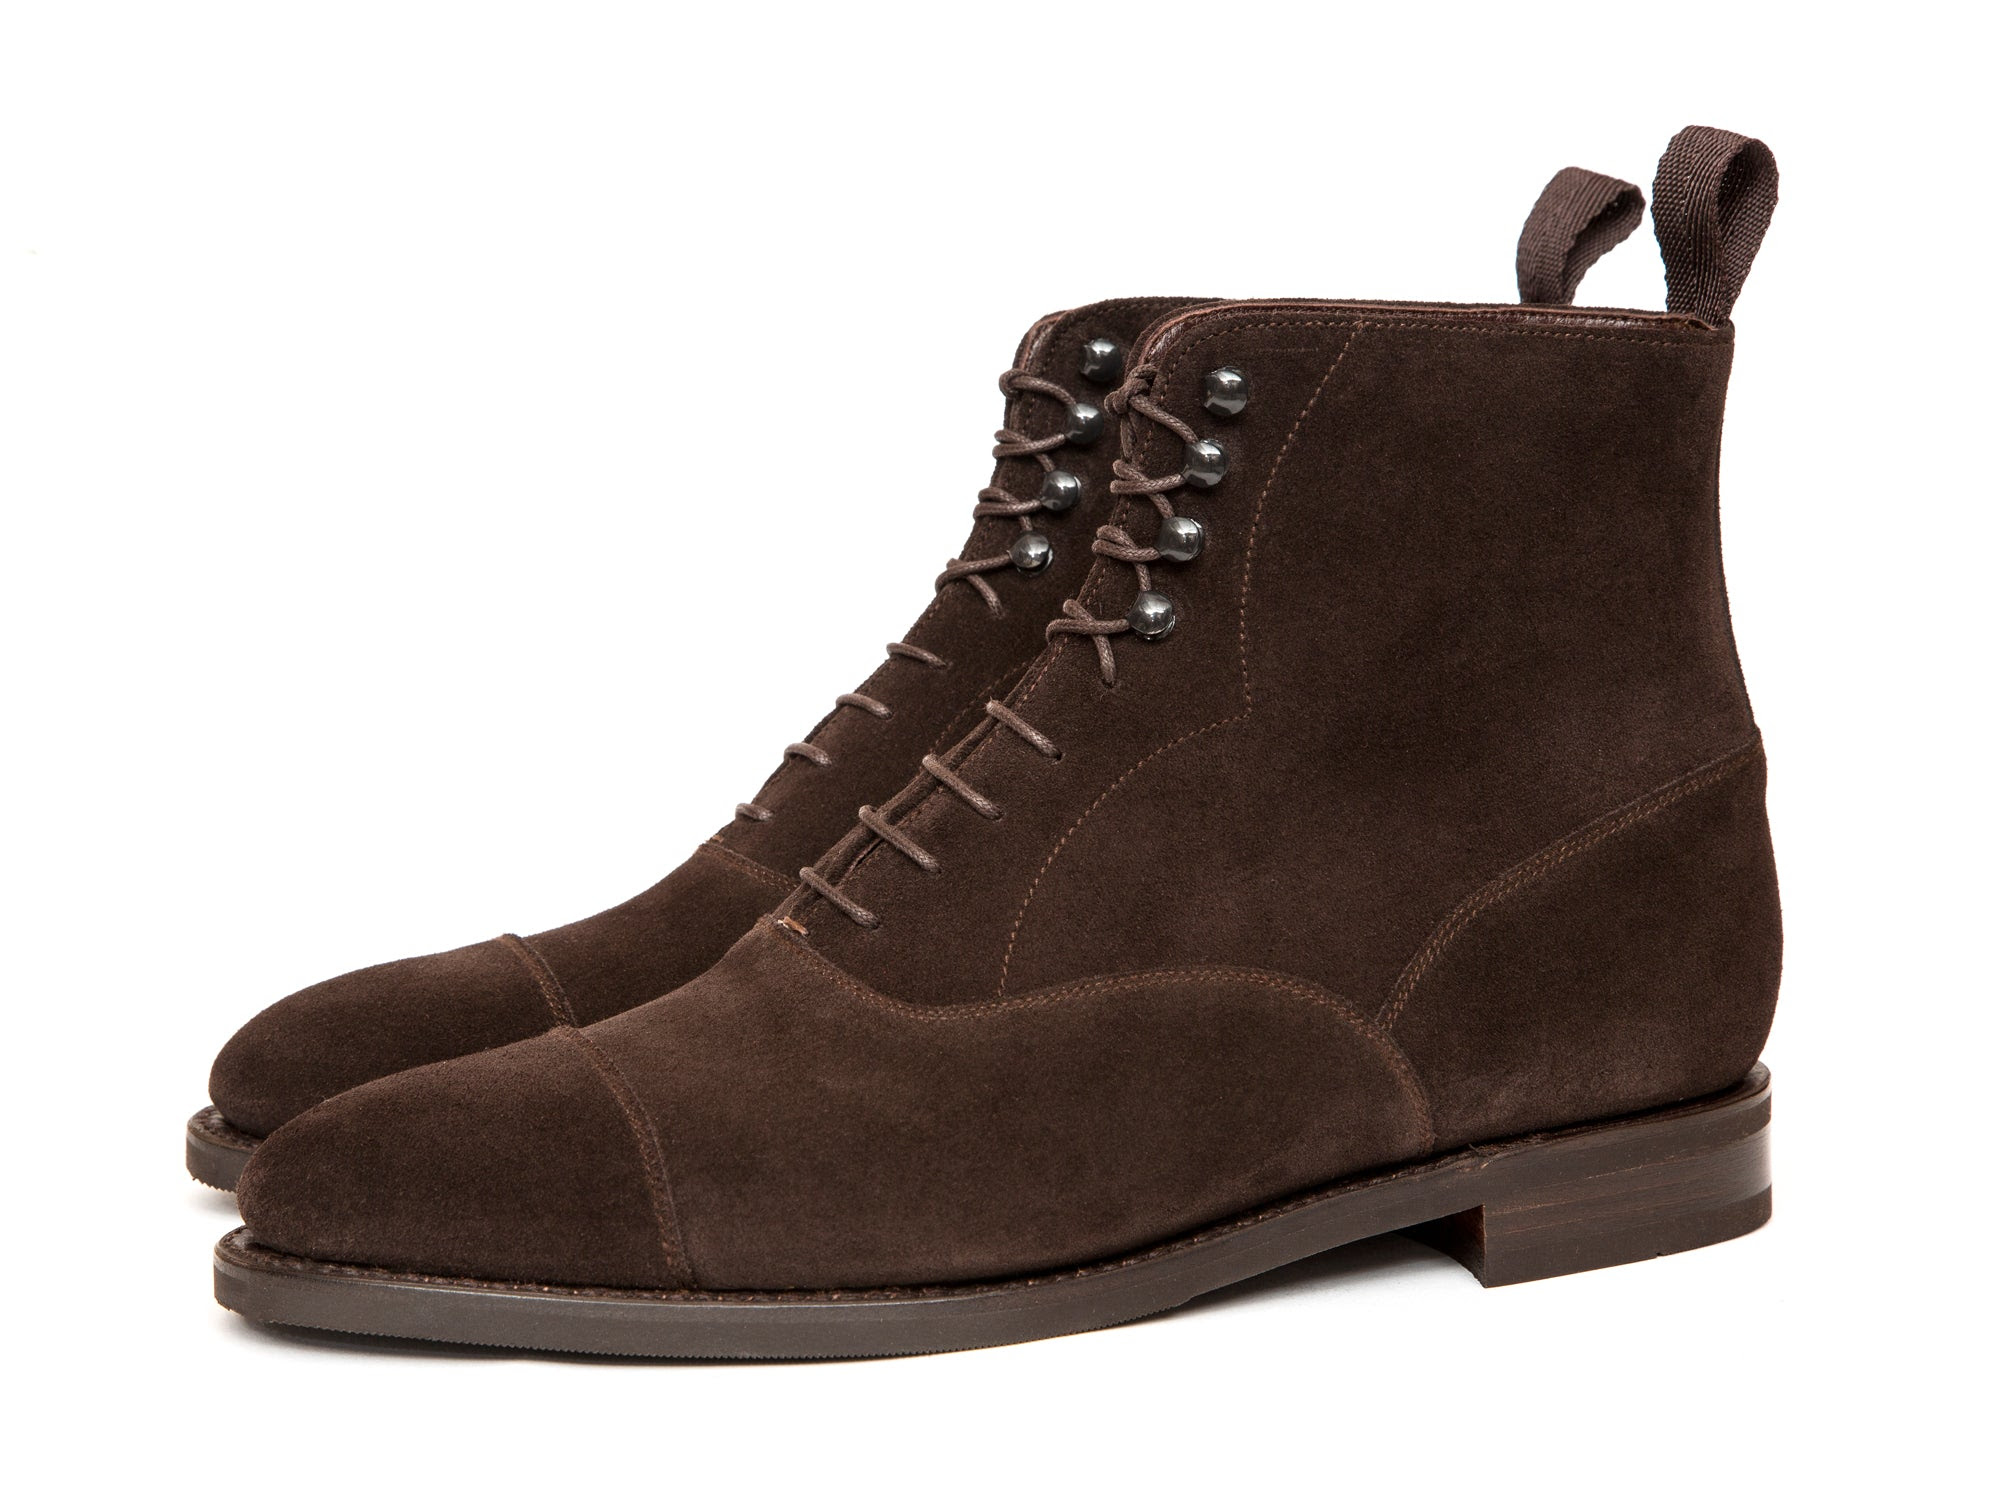 Image of Ashworth - Bitter Chocolate Suede GMTO